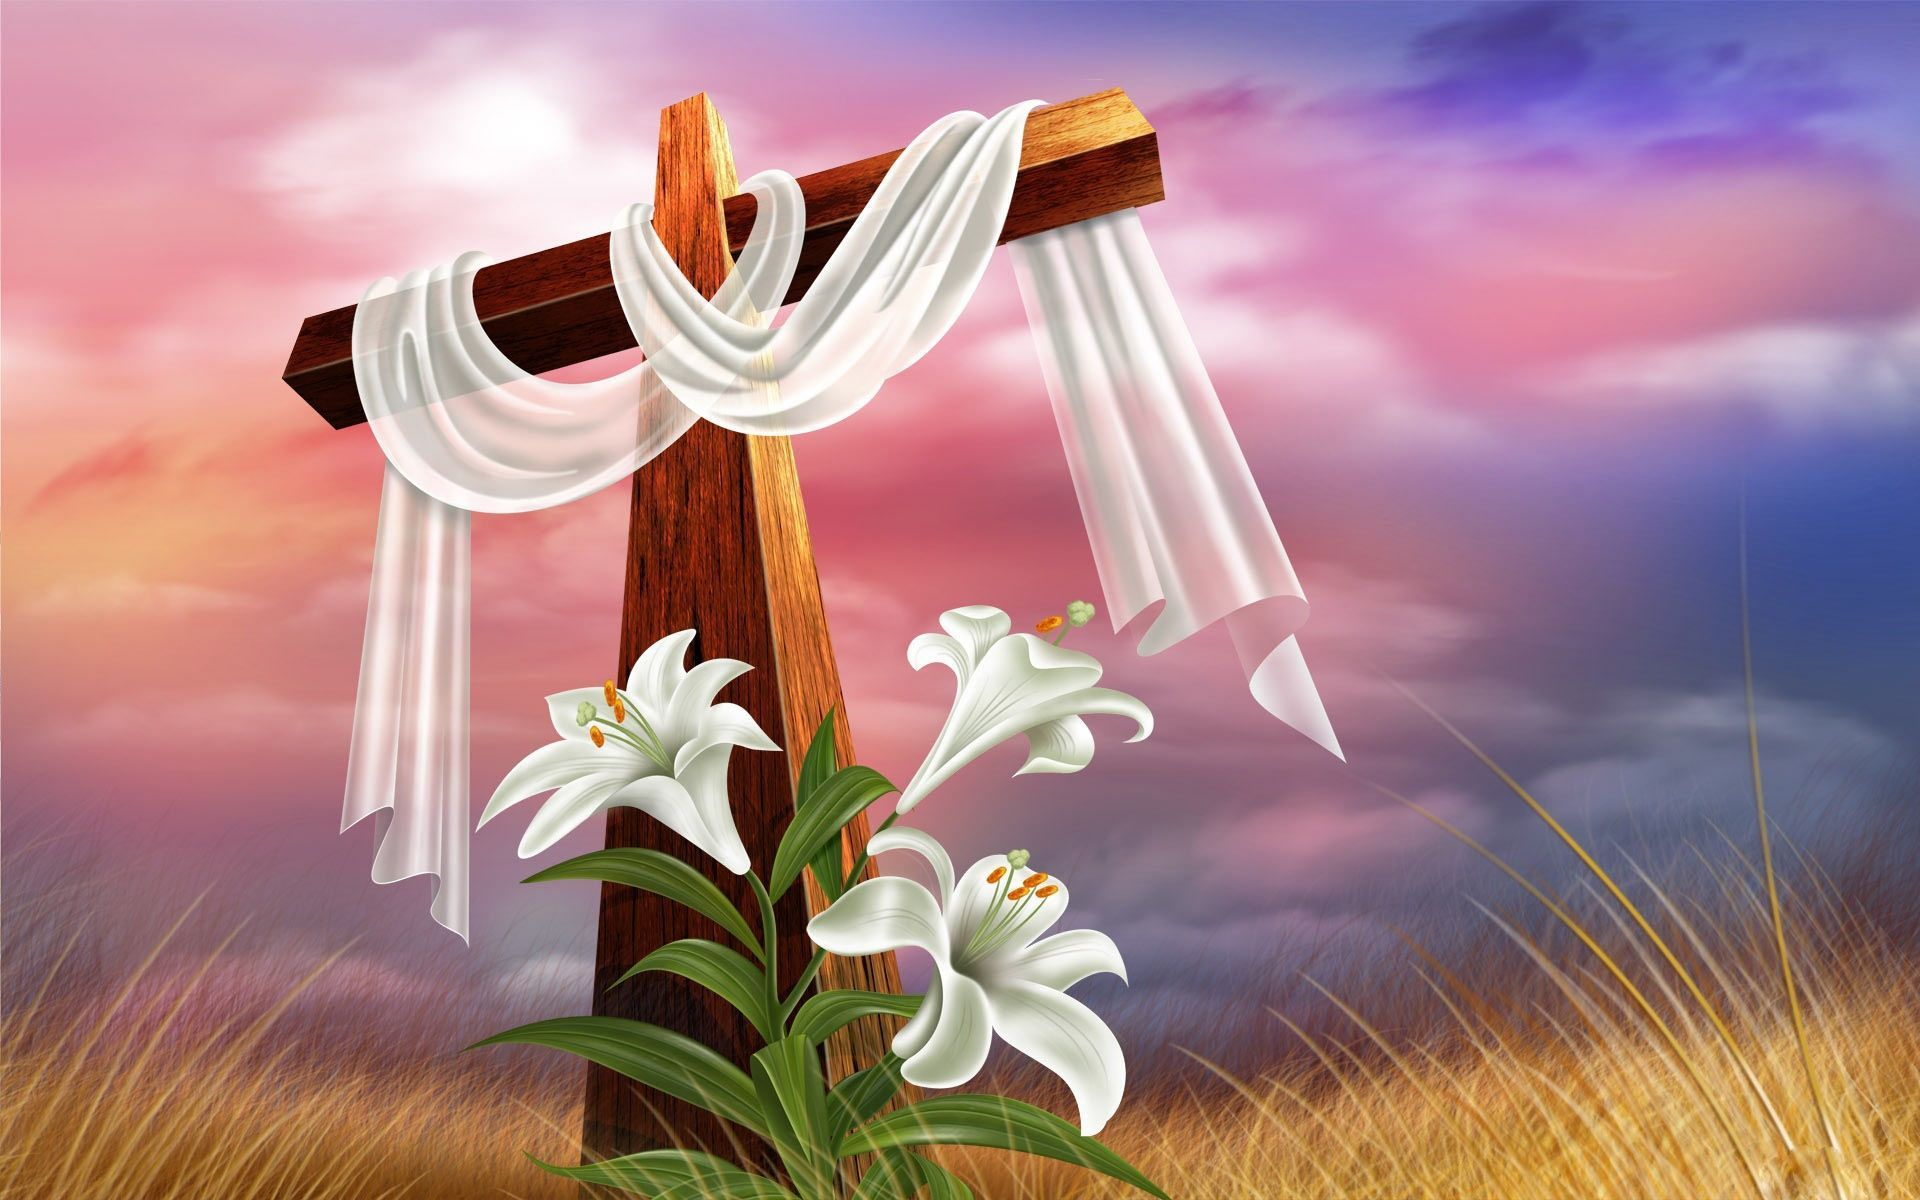 d jesus wallpapers android apps on google play